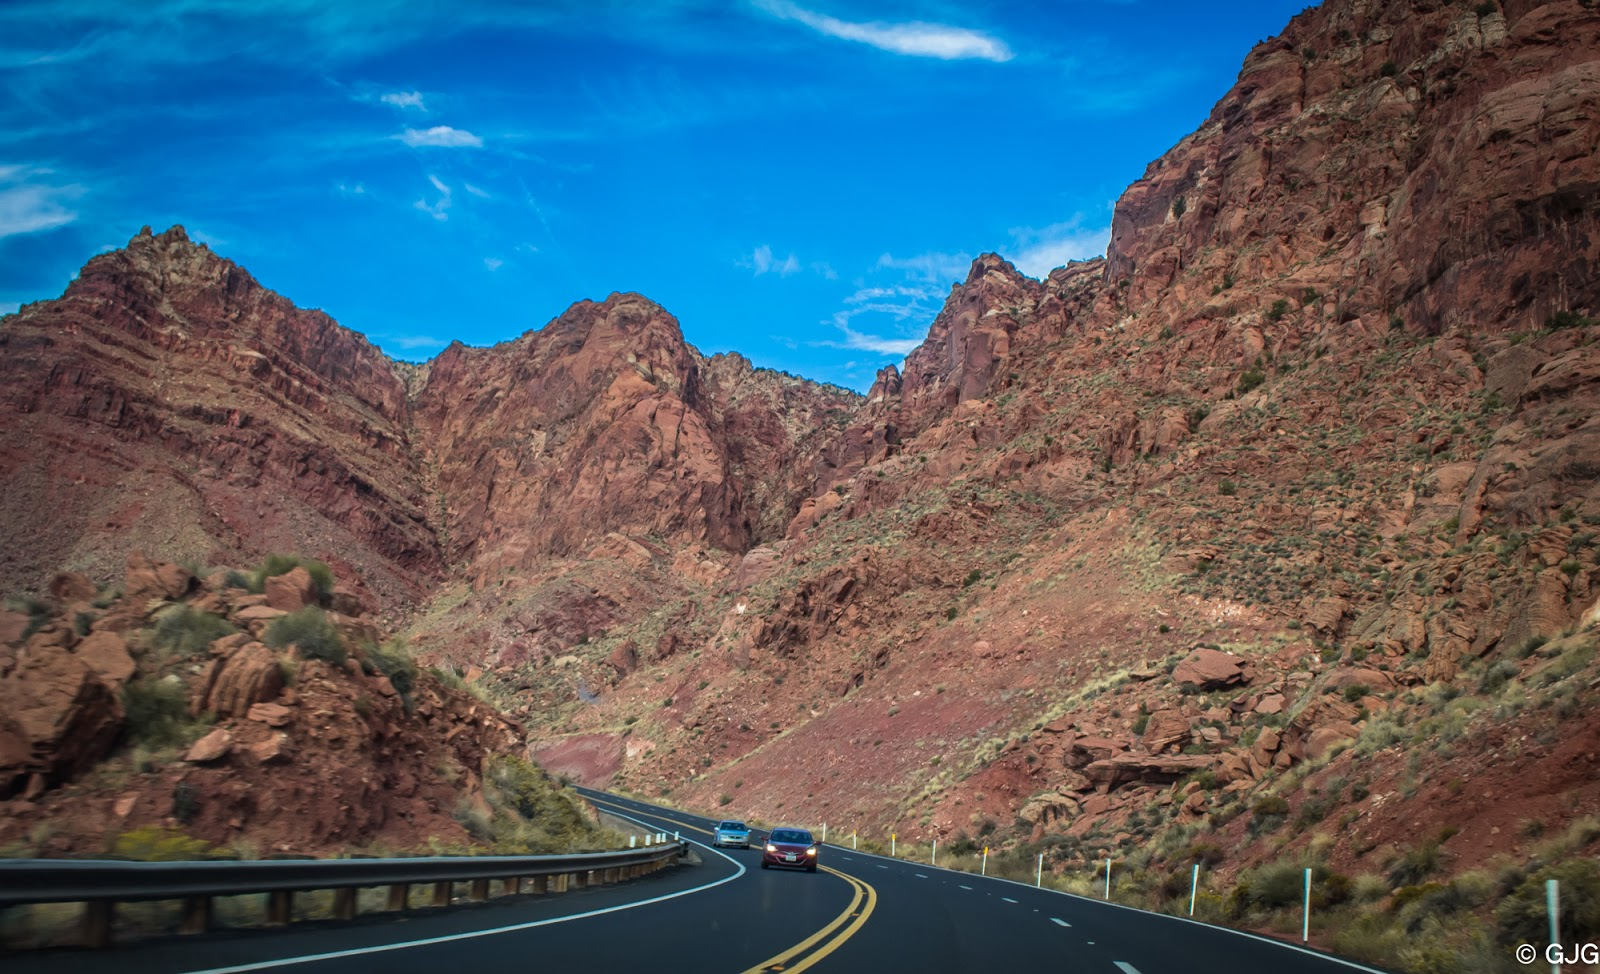 US Routes 64 and 89 Scenic Views in Arizona, USA